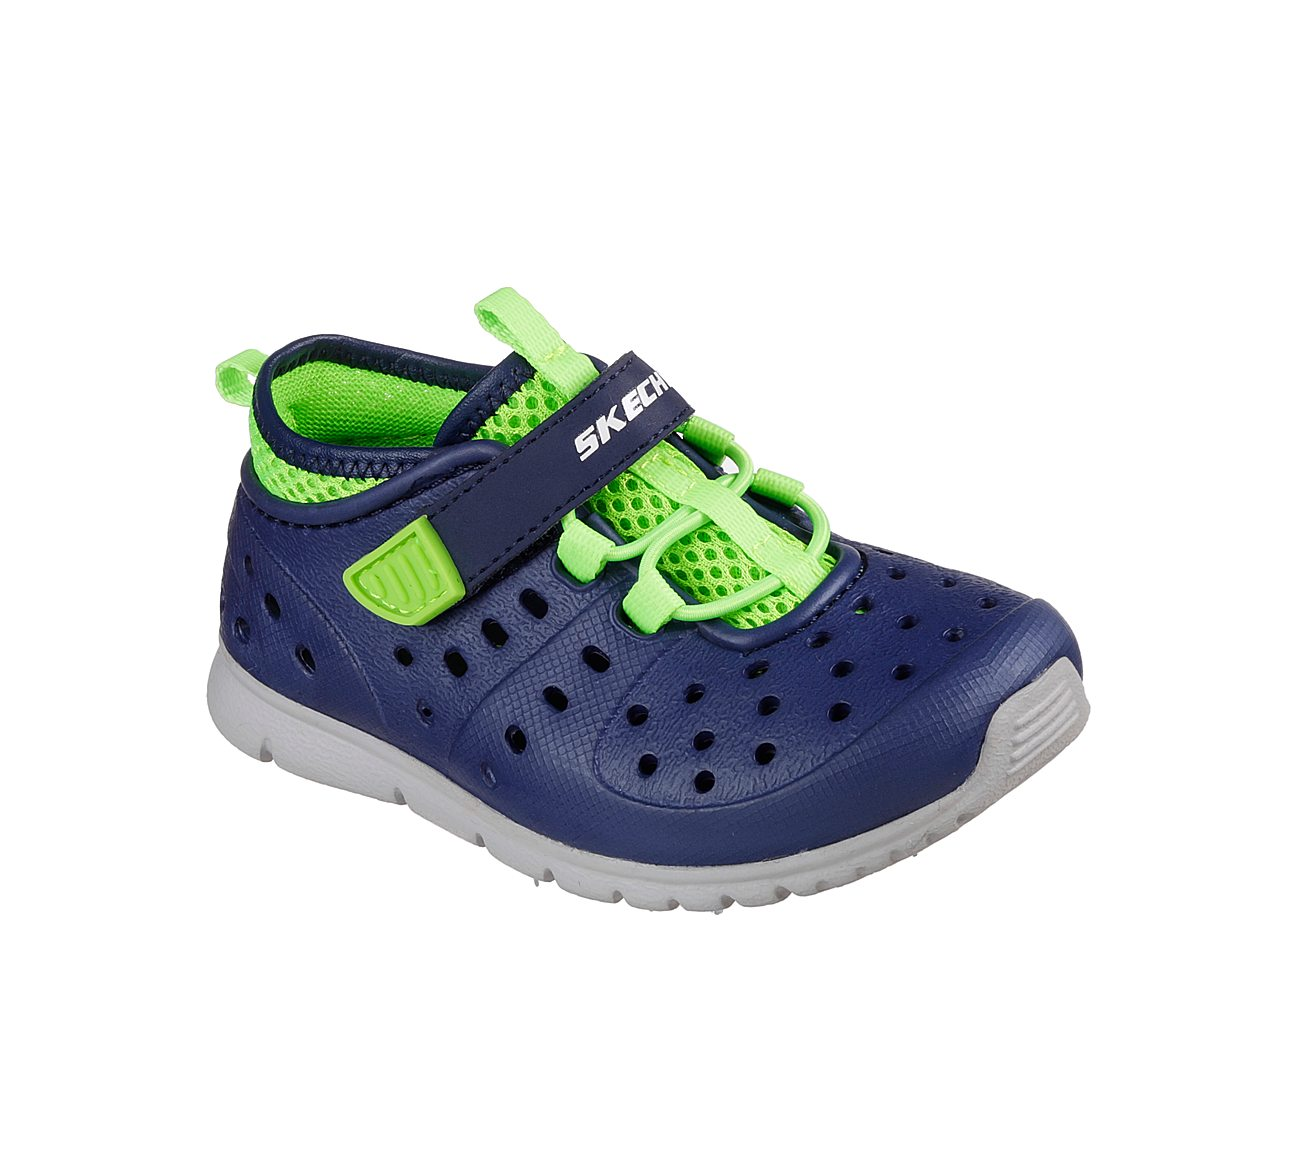 563da2254413 Buy SKECHERS Hydrozooms SKECHERS Sport Shoes only £24.00